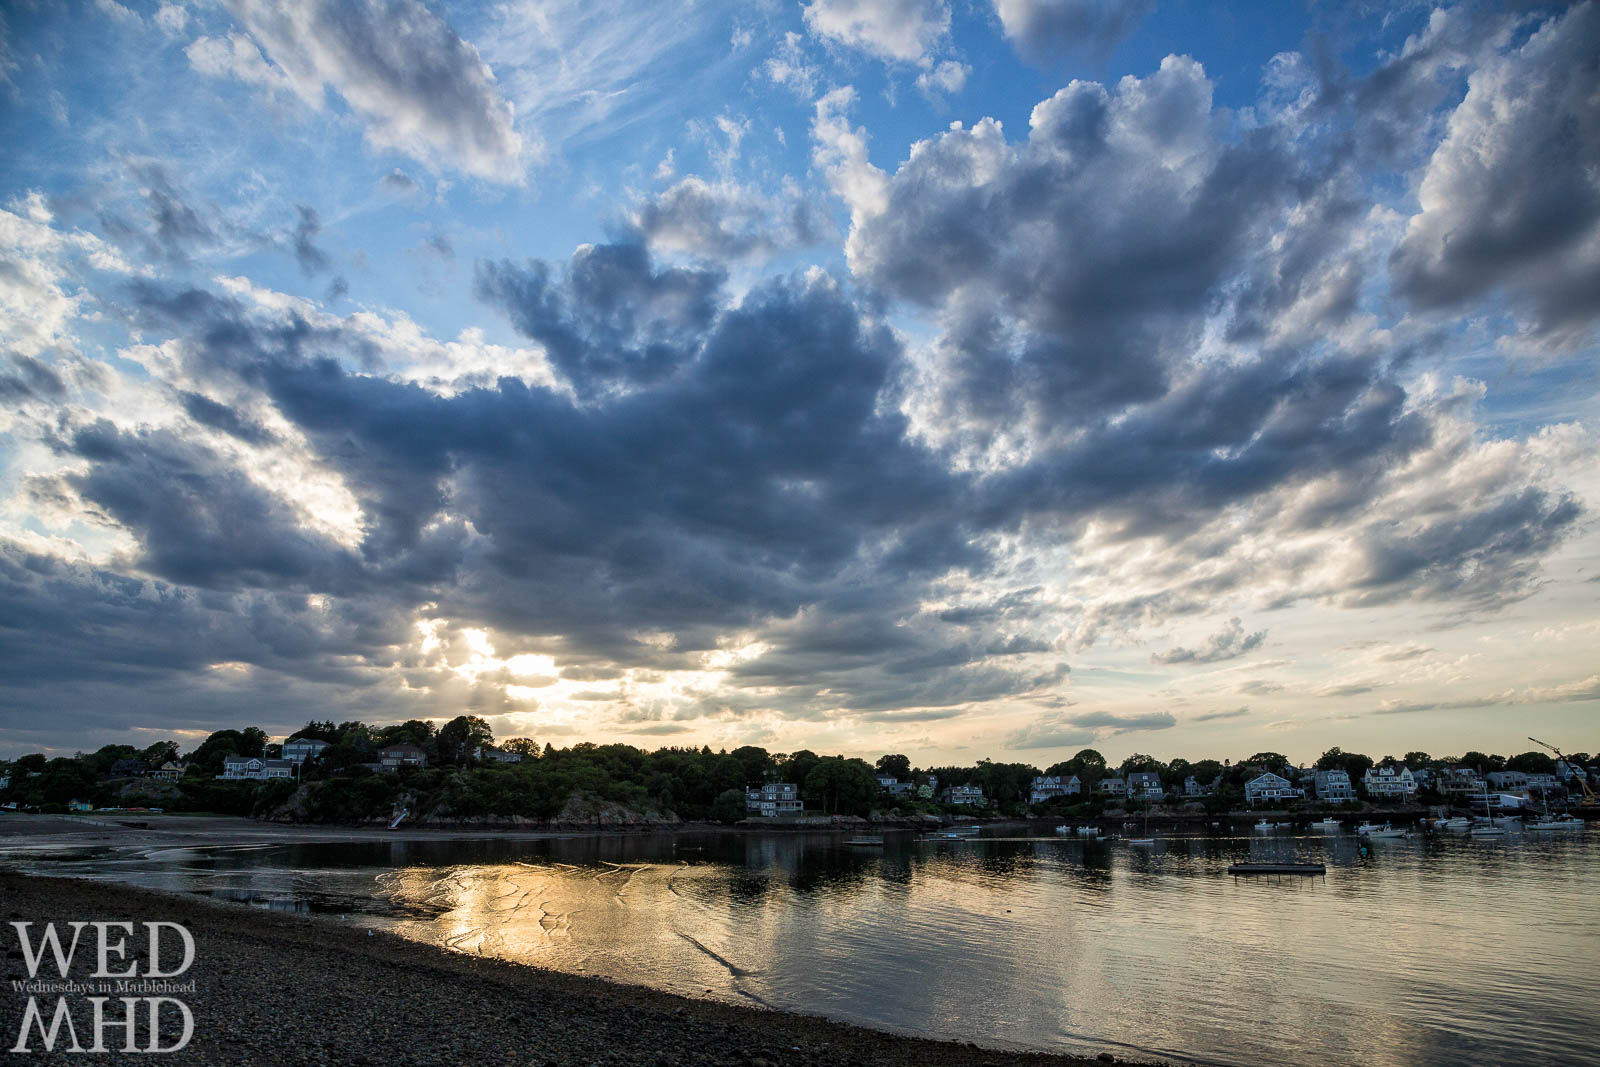 The setting sun forms rays of light through clouds and paints the golden water of Riverhead Beach